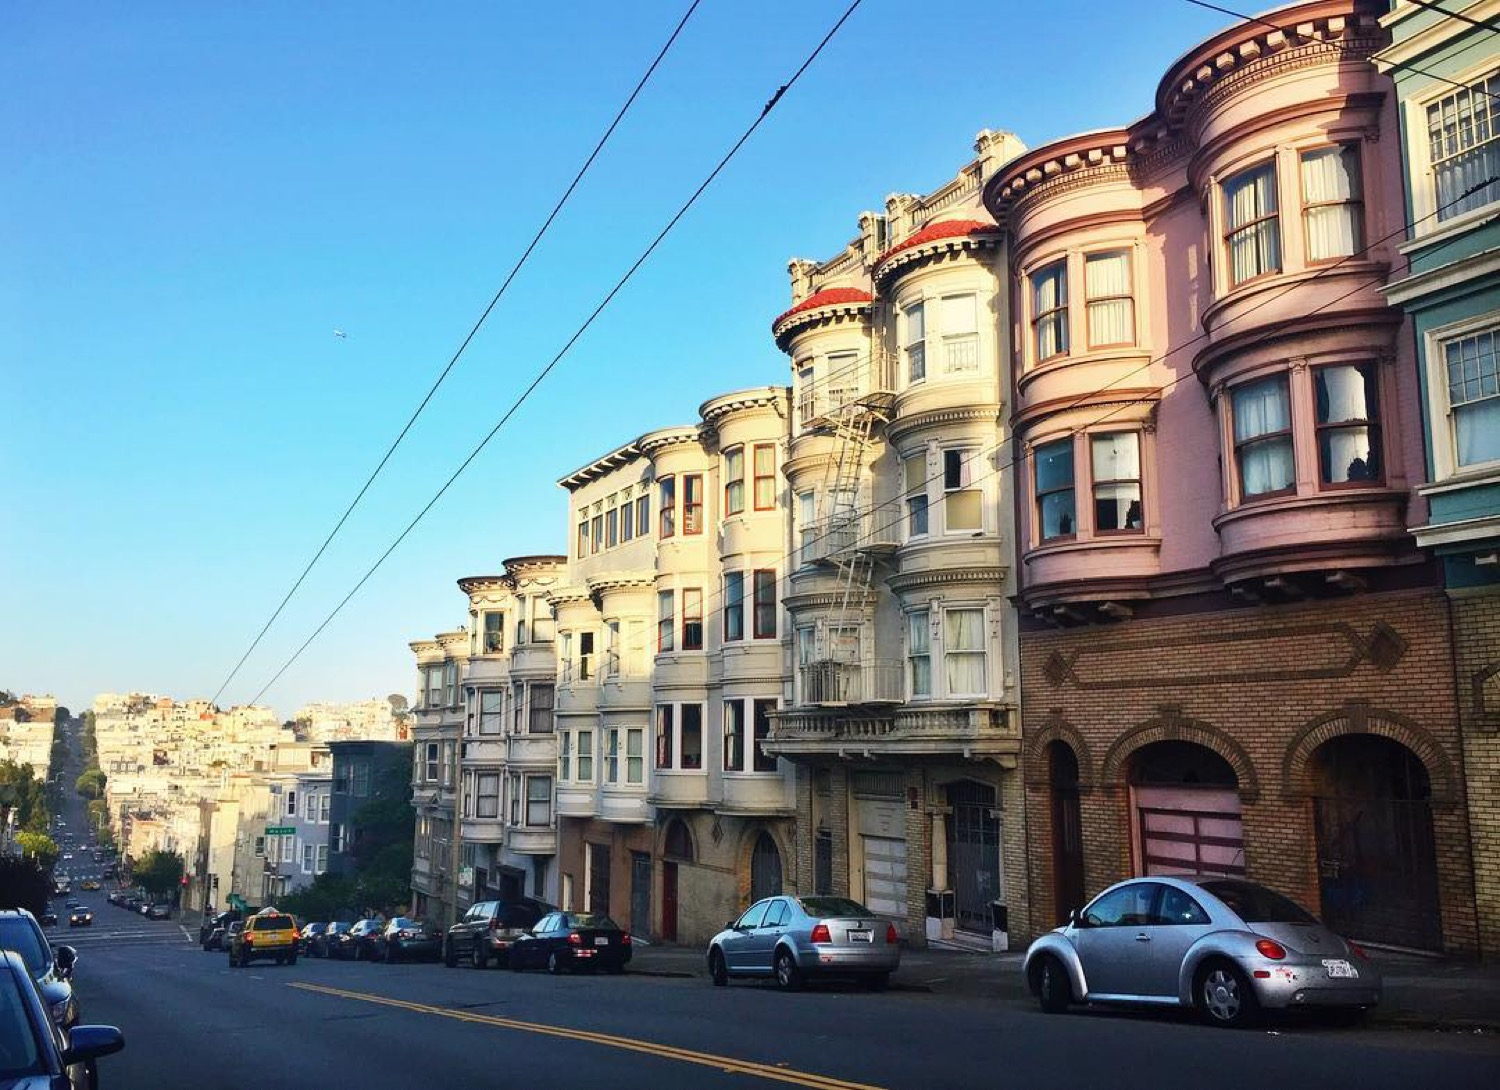 PLACE: North Beach, San Francisco / MILES FROM CINCY: 2,385 / ABOUT: The ethnic populations that once had North Beach to themselves are now joined by young professionals. The nightlife has changed accordingly, but the beautiful architecture remains. / Image courtesy of Instagram user @lovell_j // Published: 5.14.17